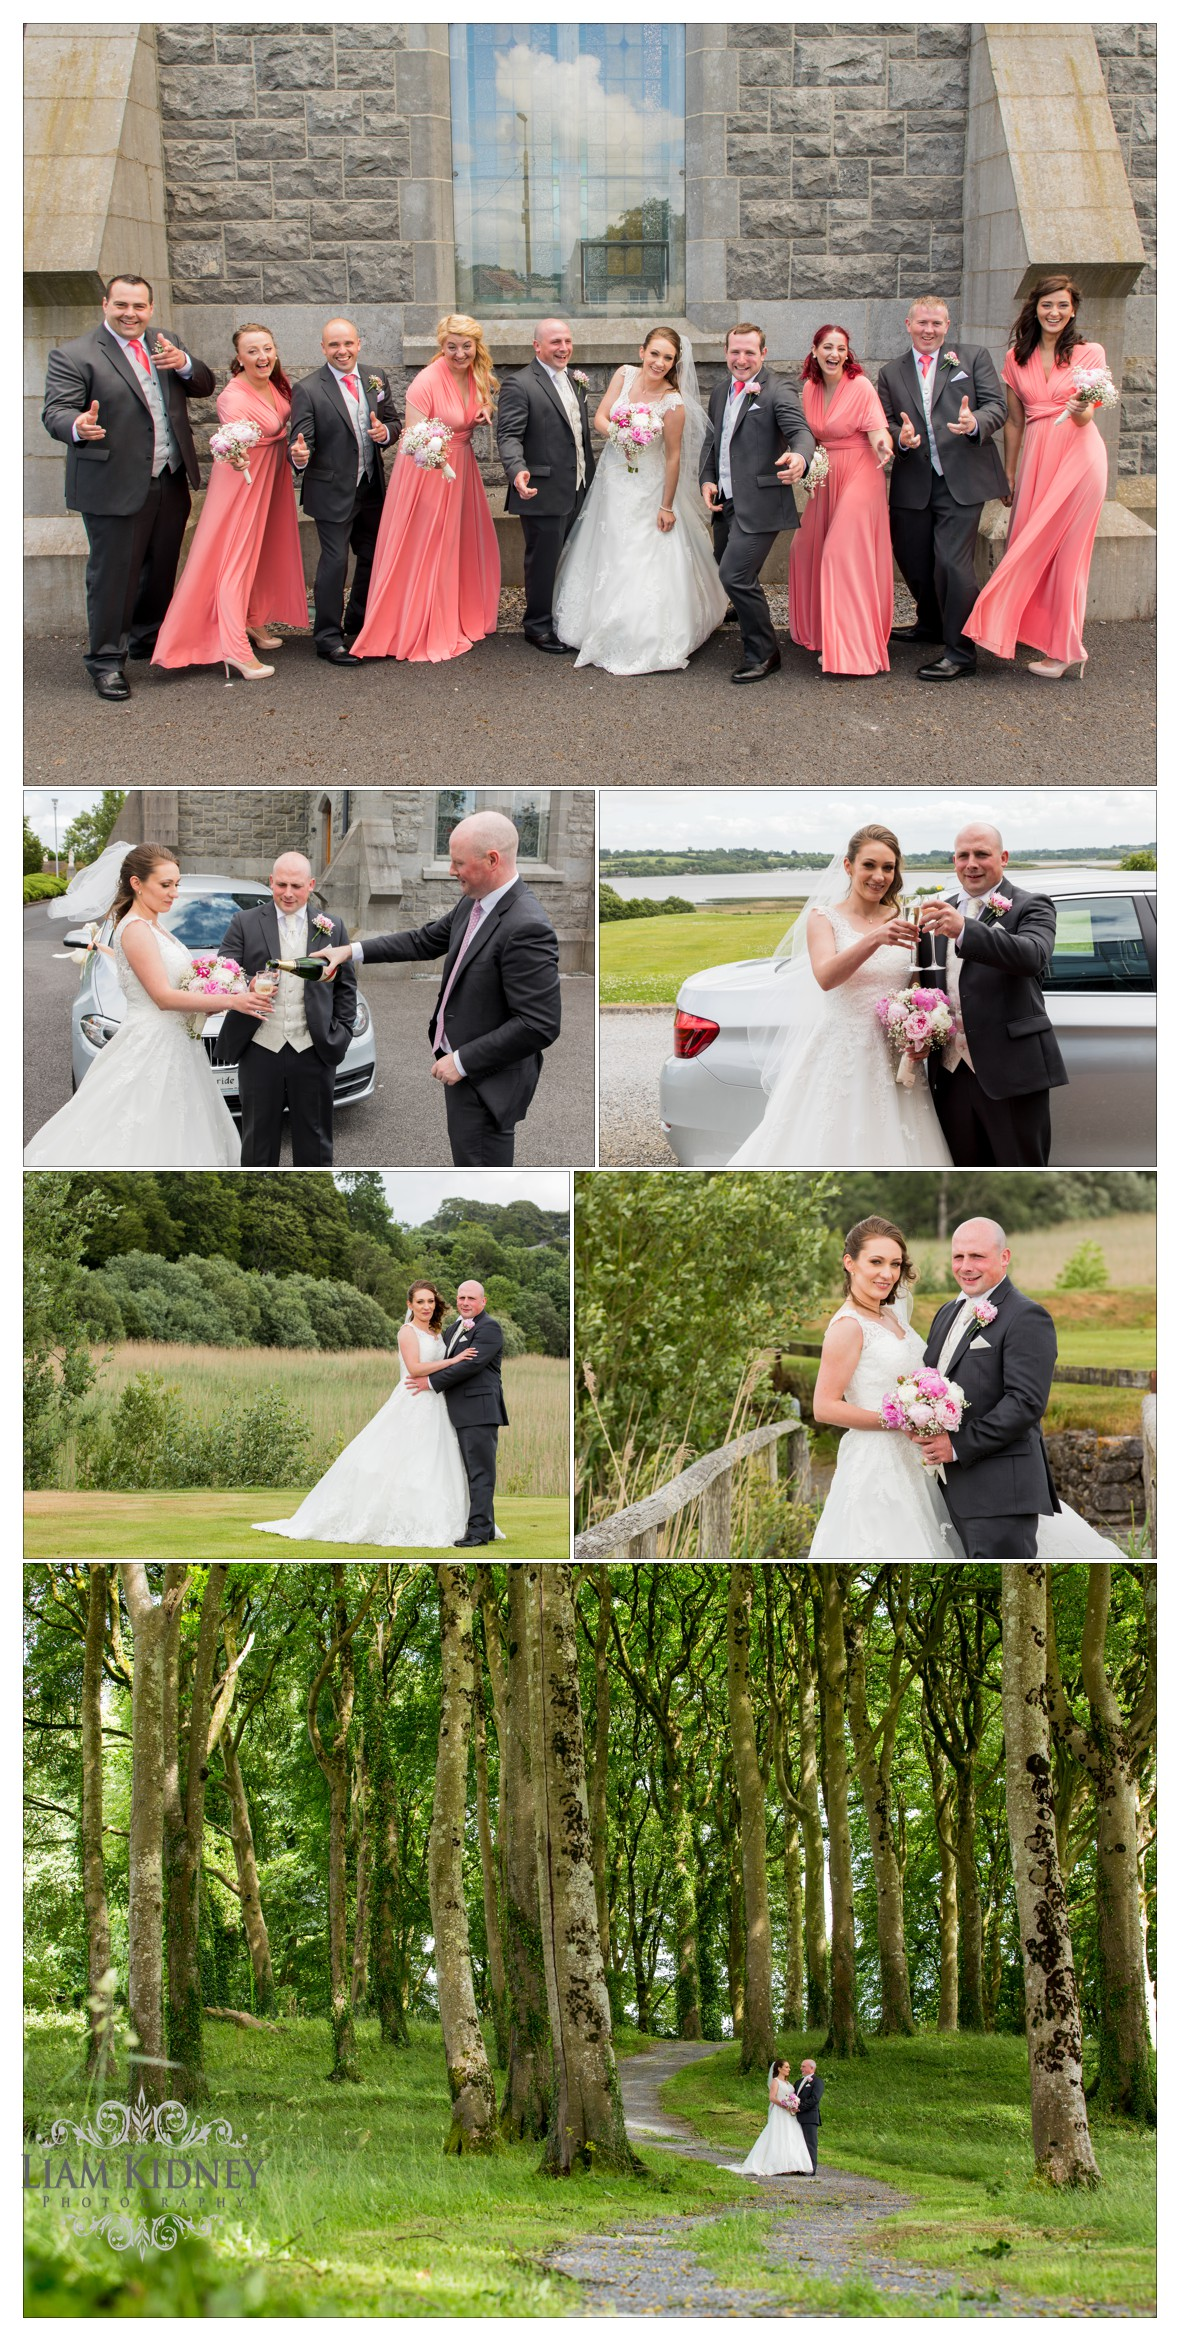 Kasia And Stan enjoying their wedding at Glasson Country House Hotel, Athlone, Co. Westmeath